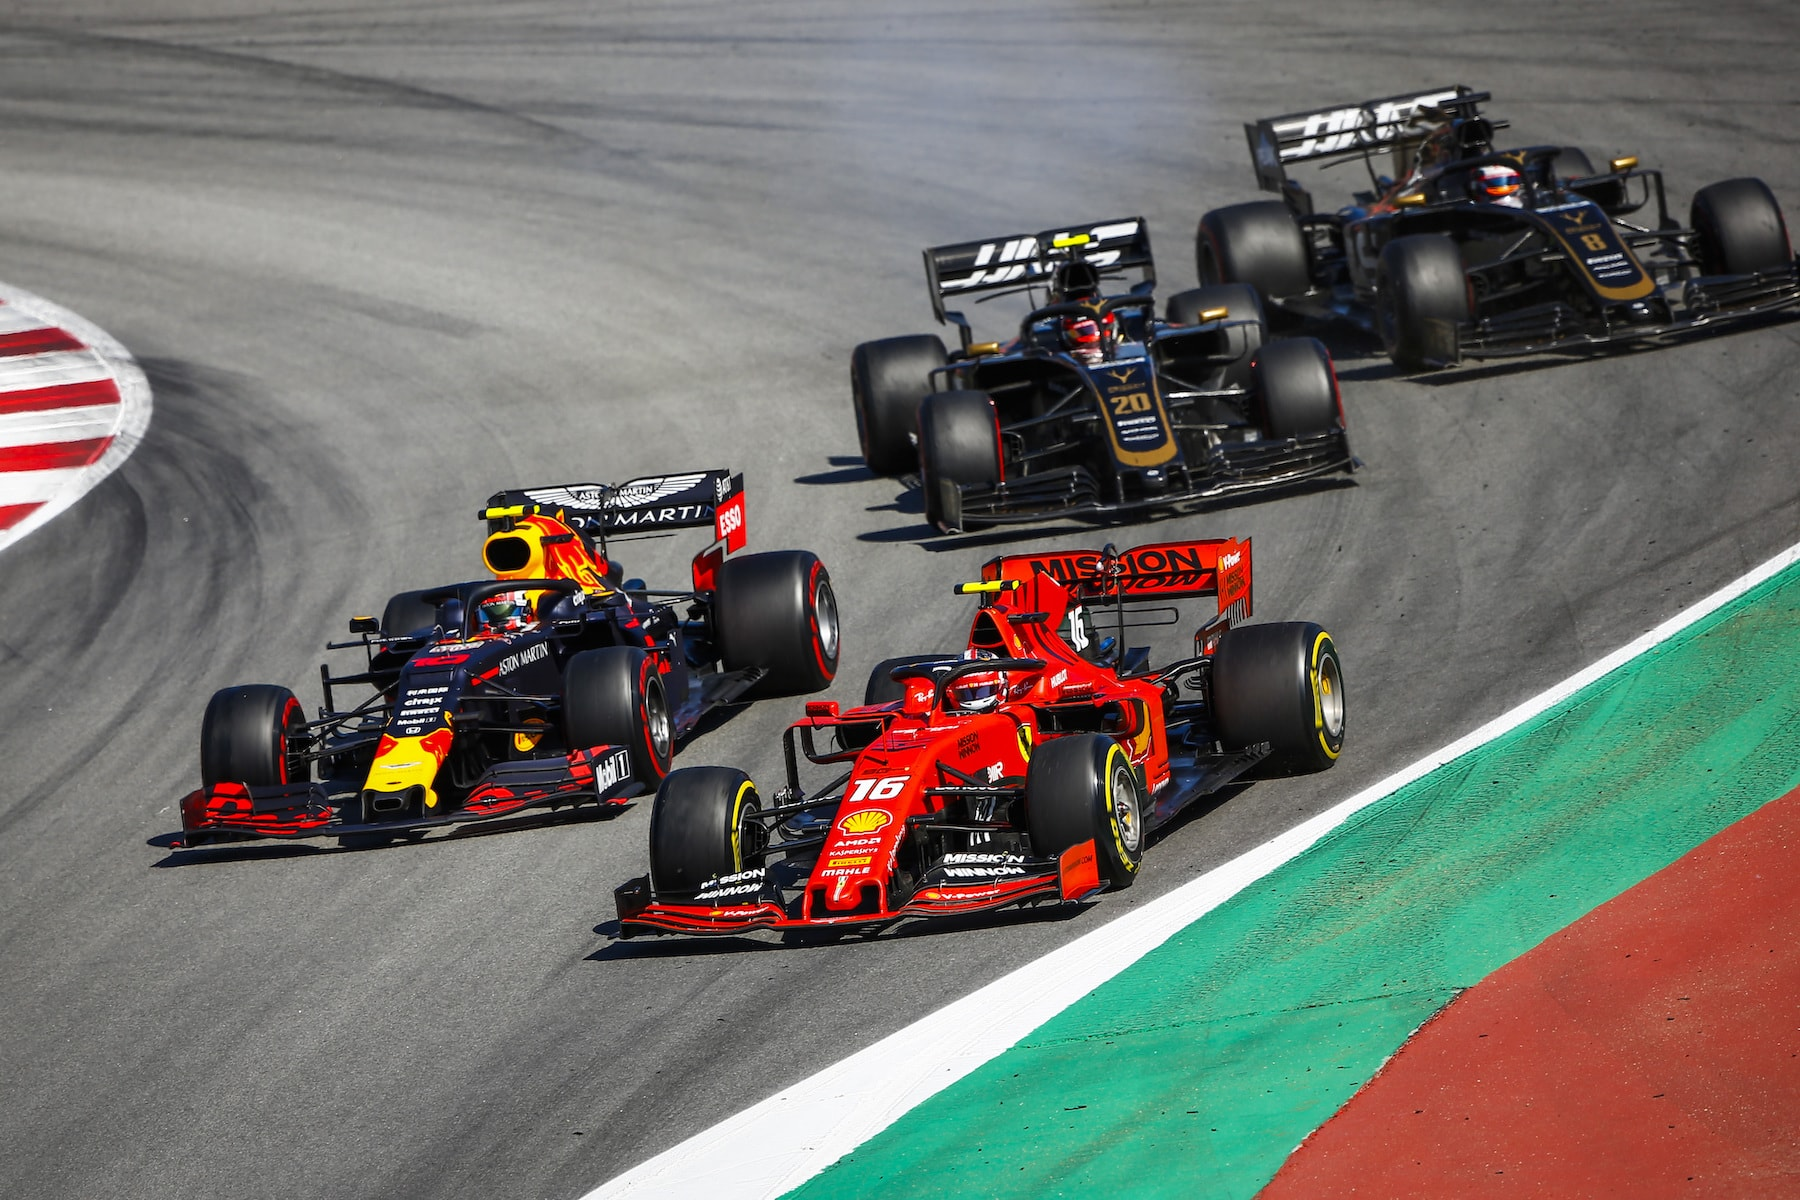 2019 Spanish GP Sunday 31.jpg